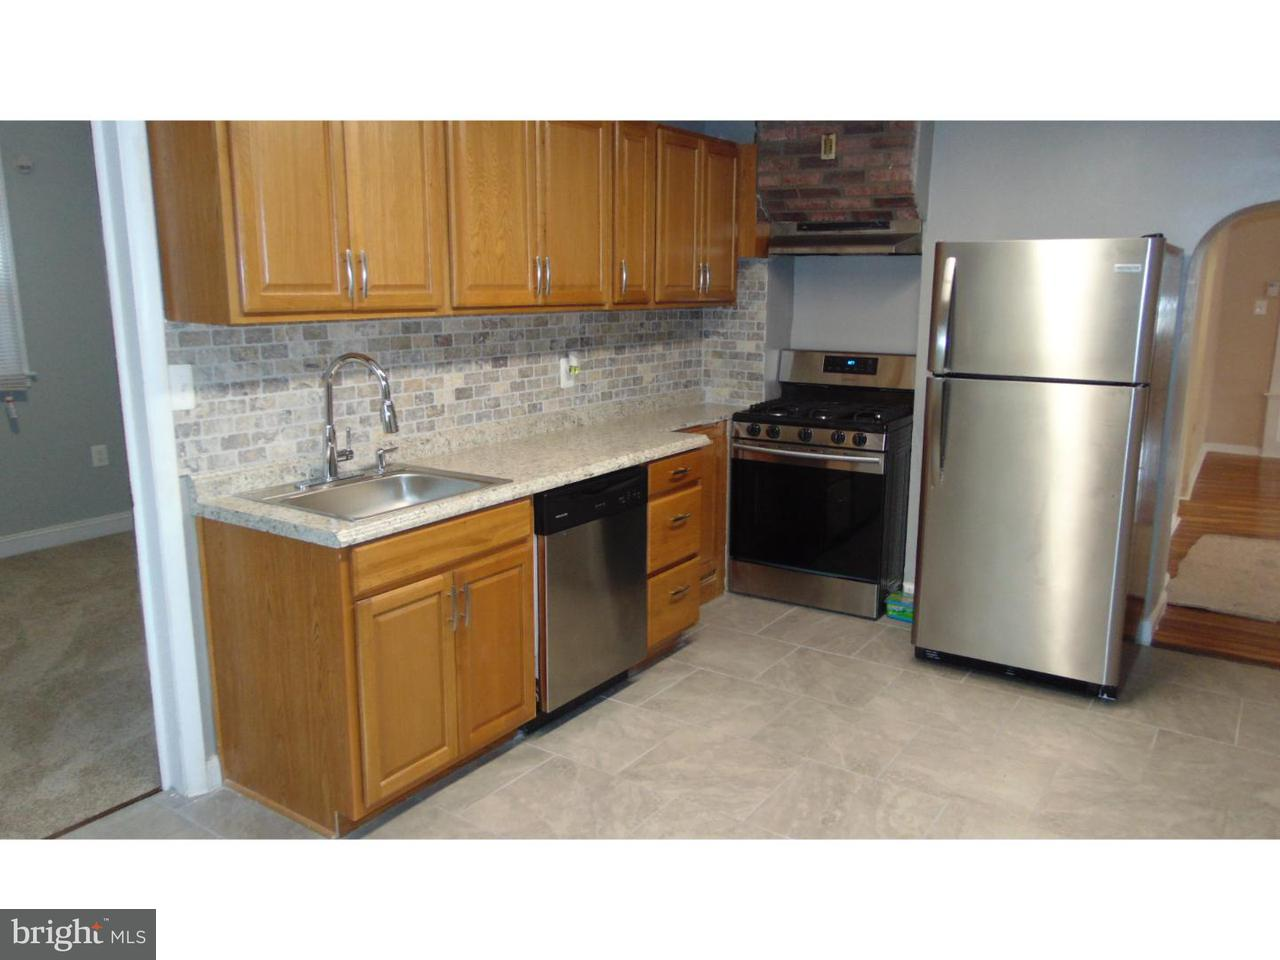 Triplex for Rent at 7500 NEW 2ND ST #7500 A Elkins Park, Pennsylvania 19027 United States